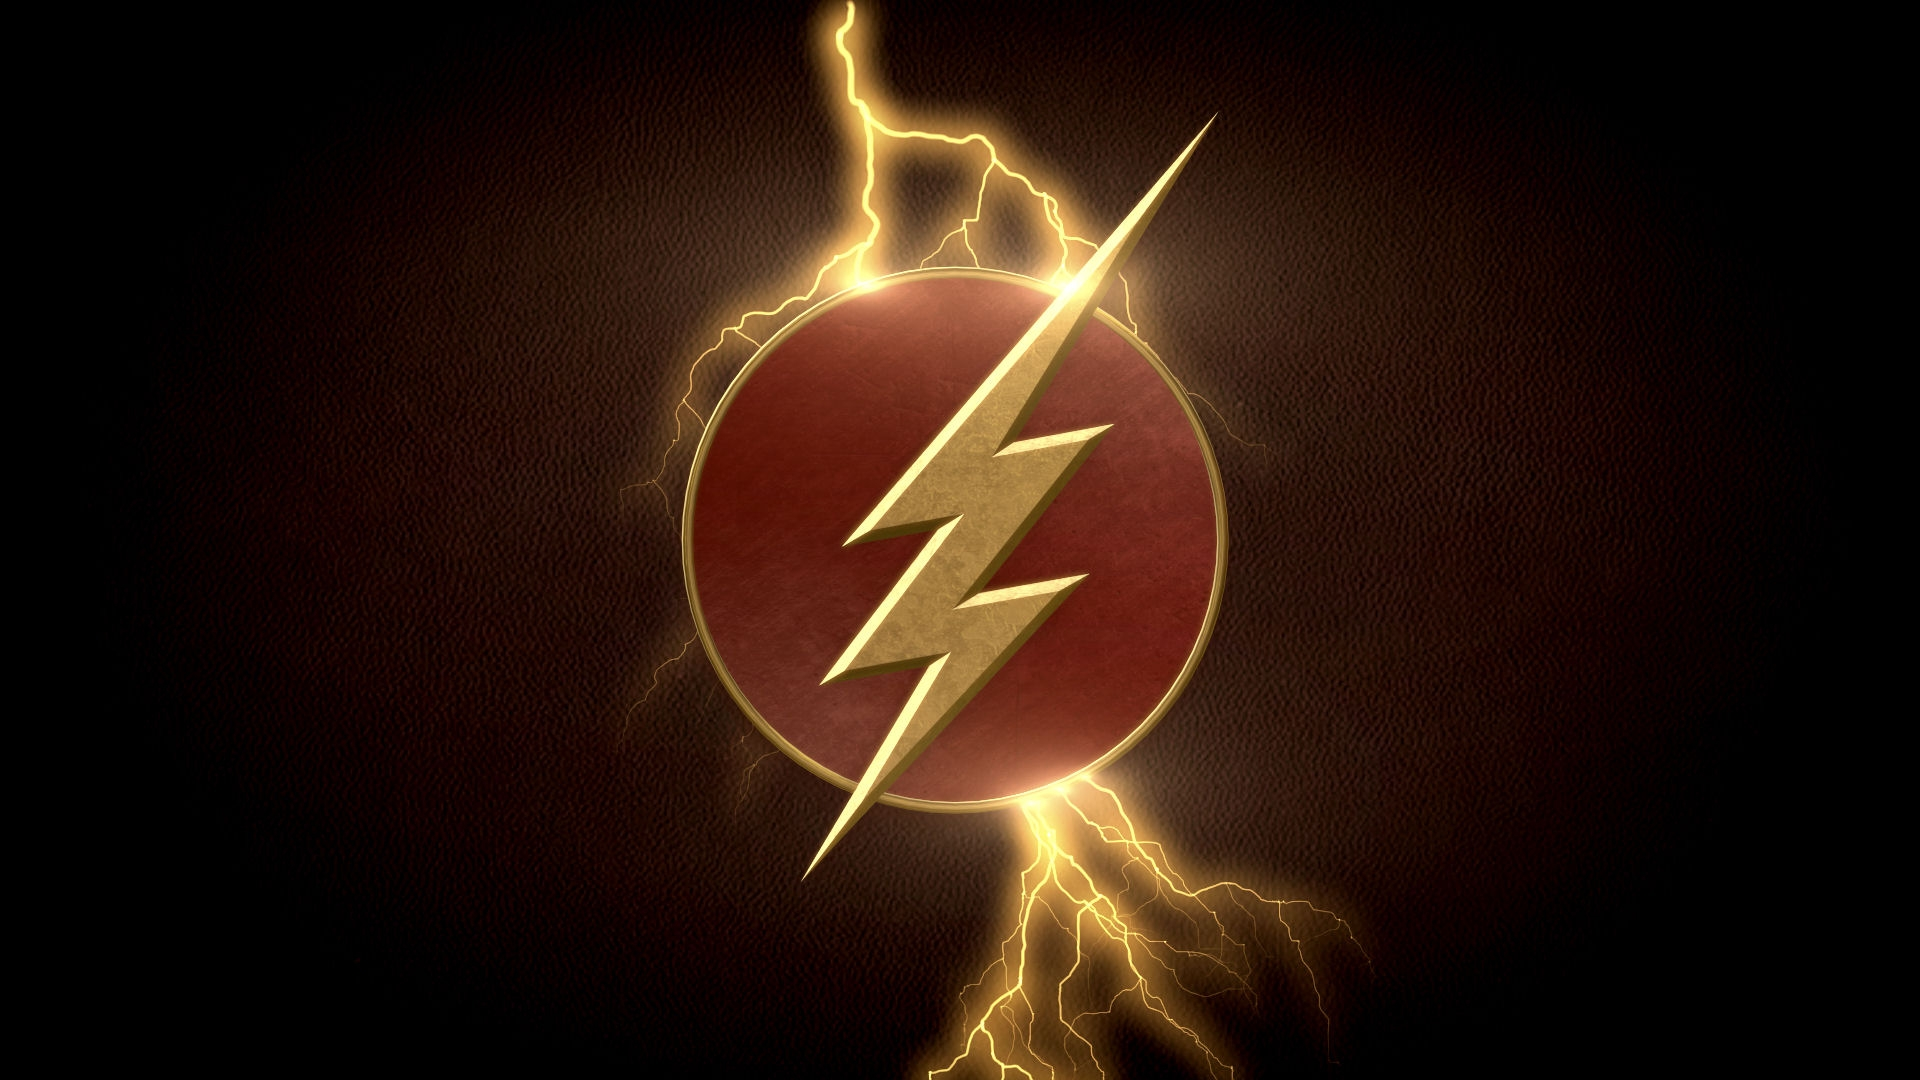 49 The Flash Cw Wallpaper Hd On Wallpapersafari